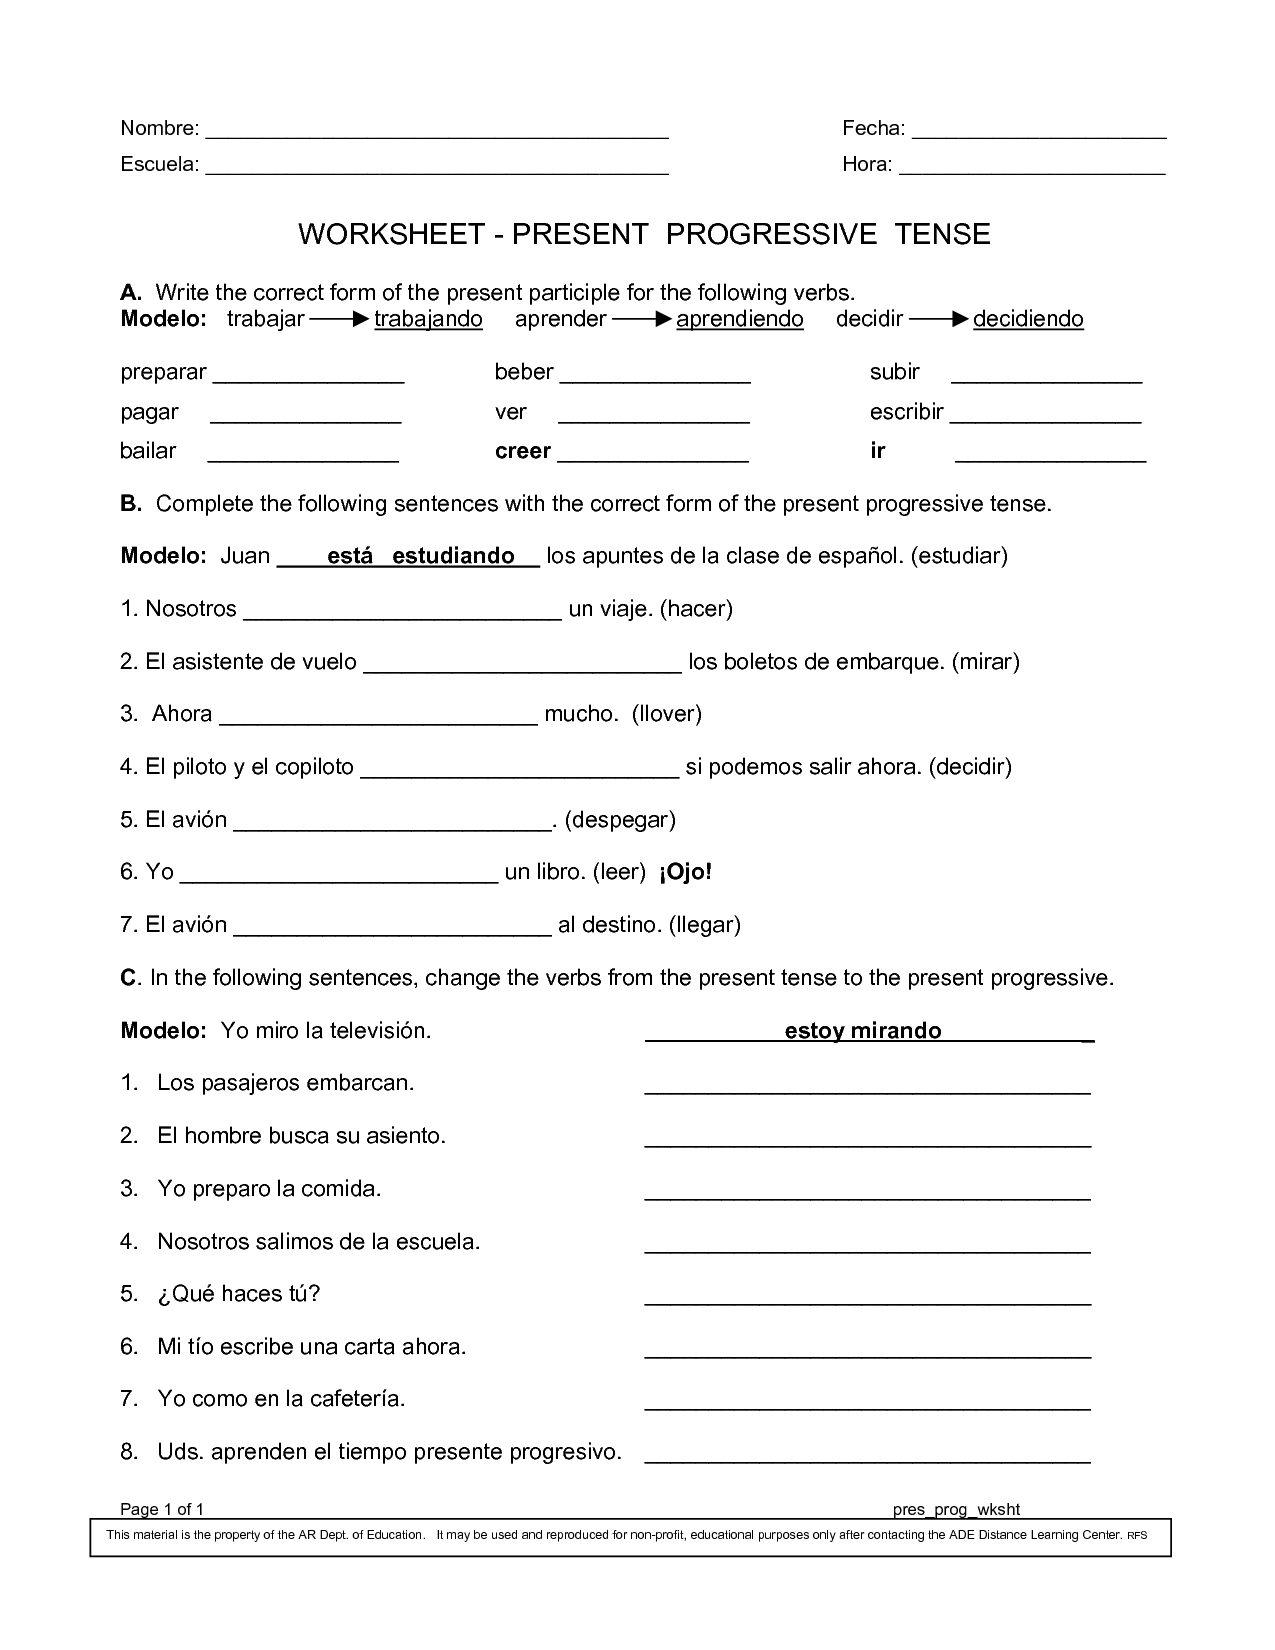 Spanish worksheets printables present progressive worksheet spanish worksheets printables present progressive worksheet robcynllc Gallery